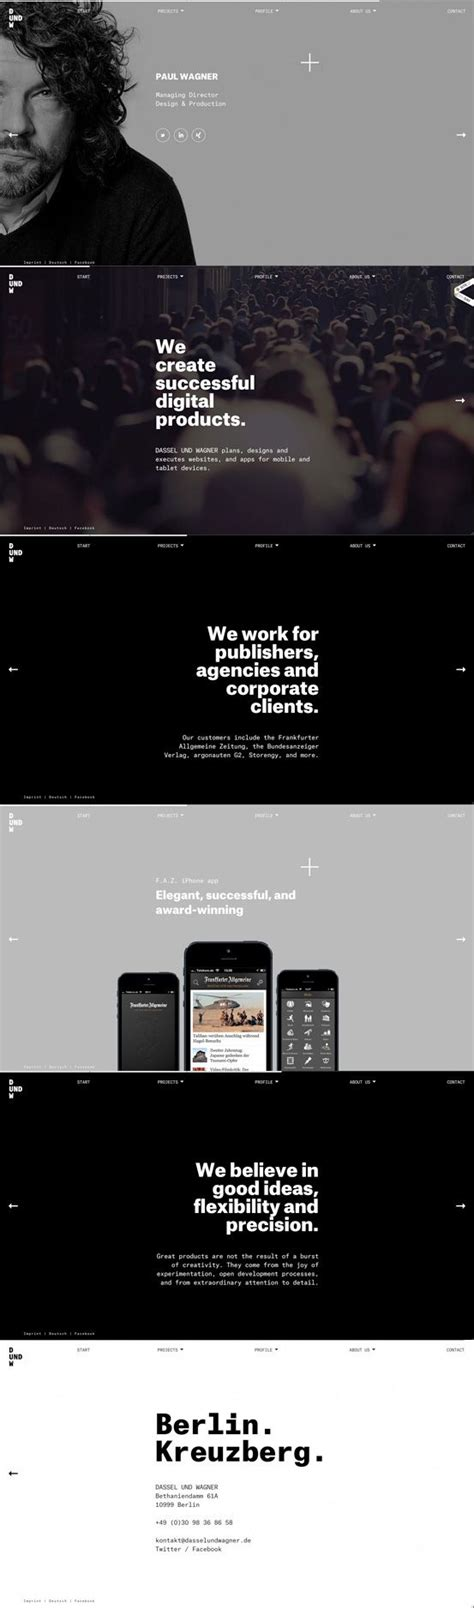 good website ideas 15 great website layout ideas for inspiration